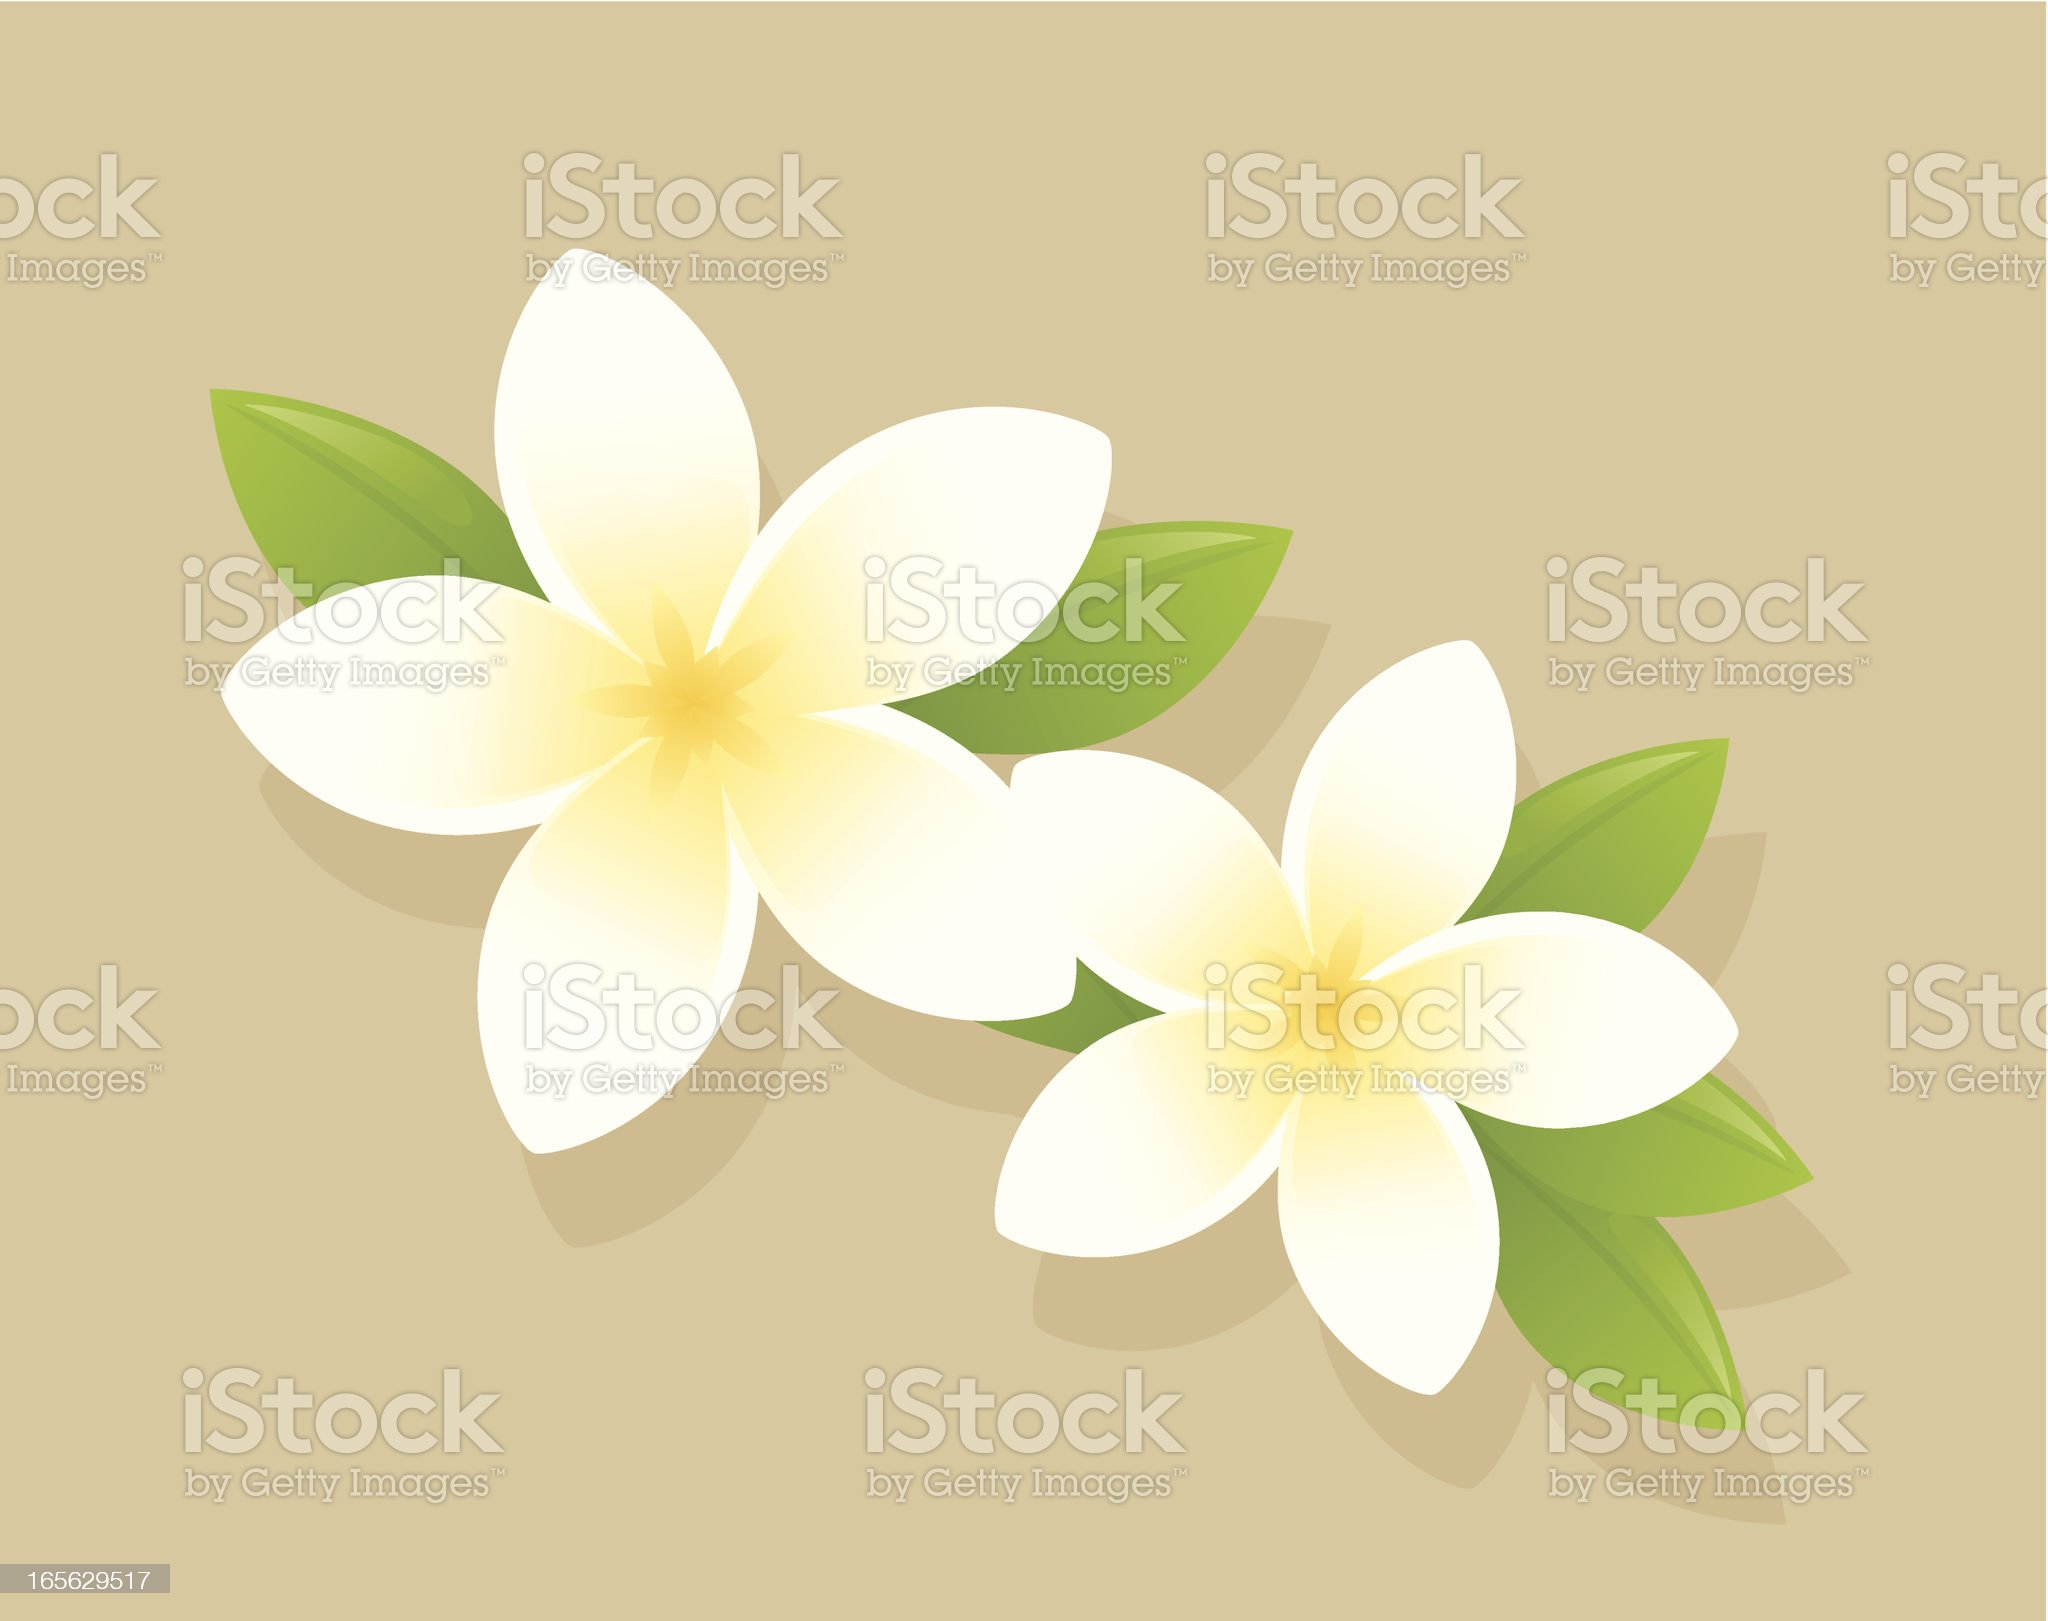 Frangipani royalty-free stock vector art